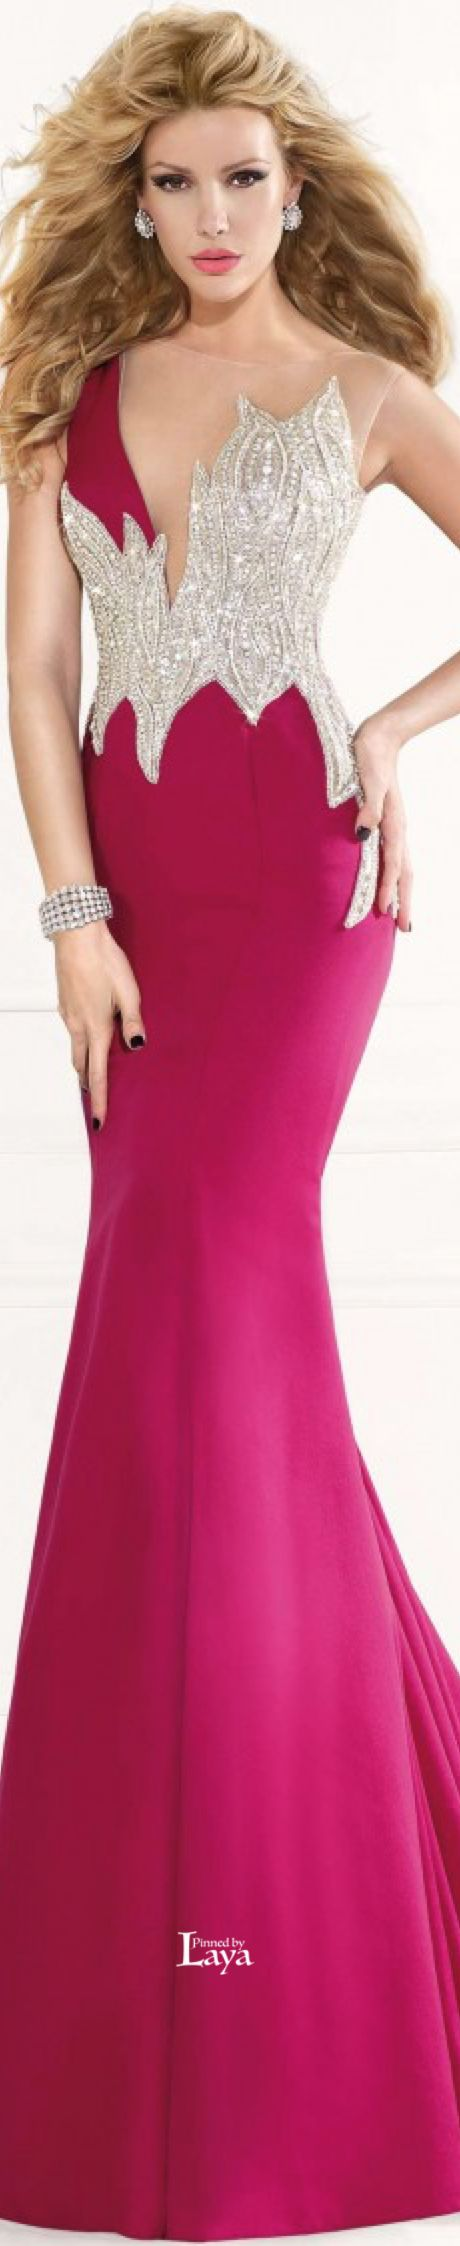 Sexy Dress - http://www.inews-news.com/women-s-world.html